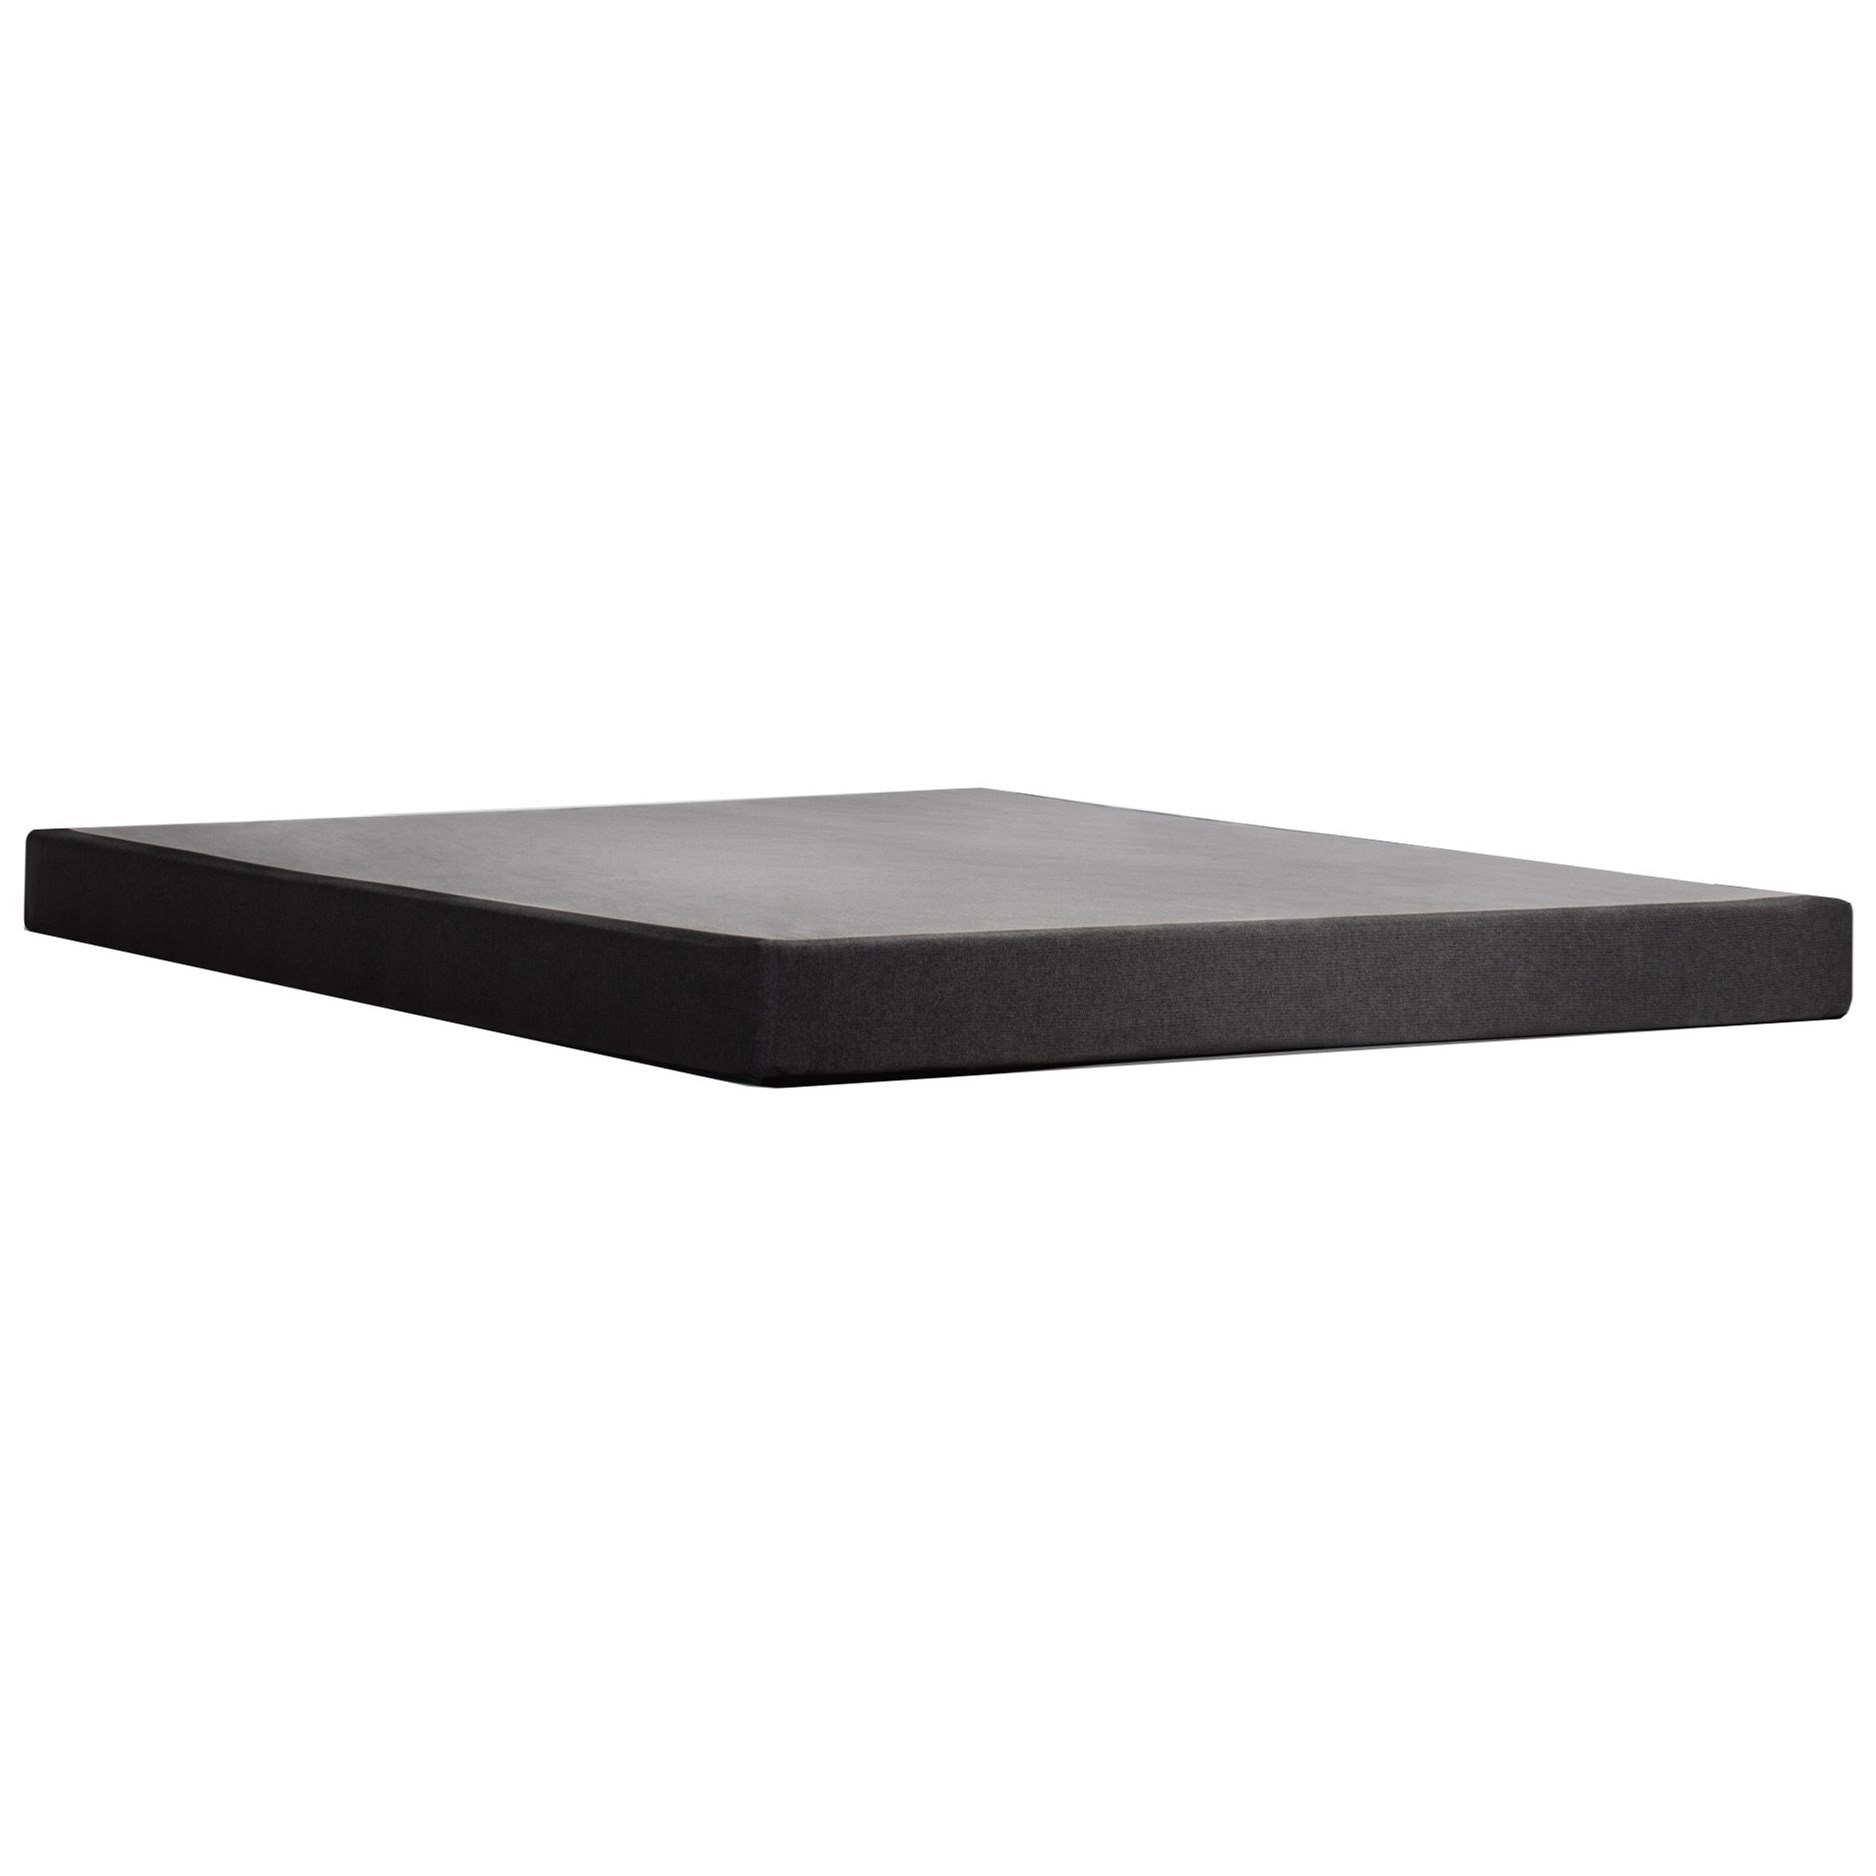 "2018 Tempur Foundations Split Queen Low Profile Base 5"" Height by Tempur-Pedic® at Adcock Furniture"